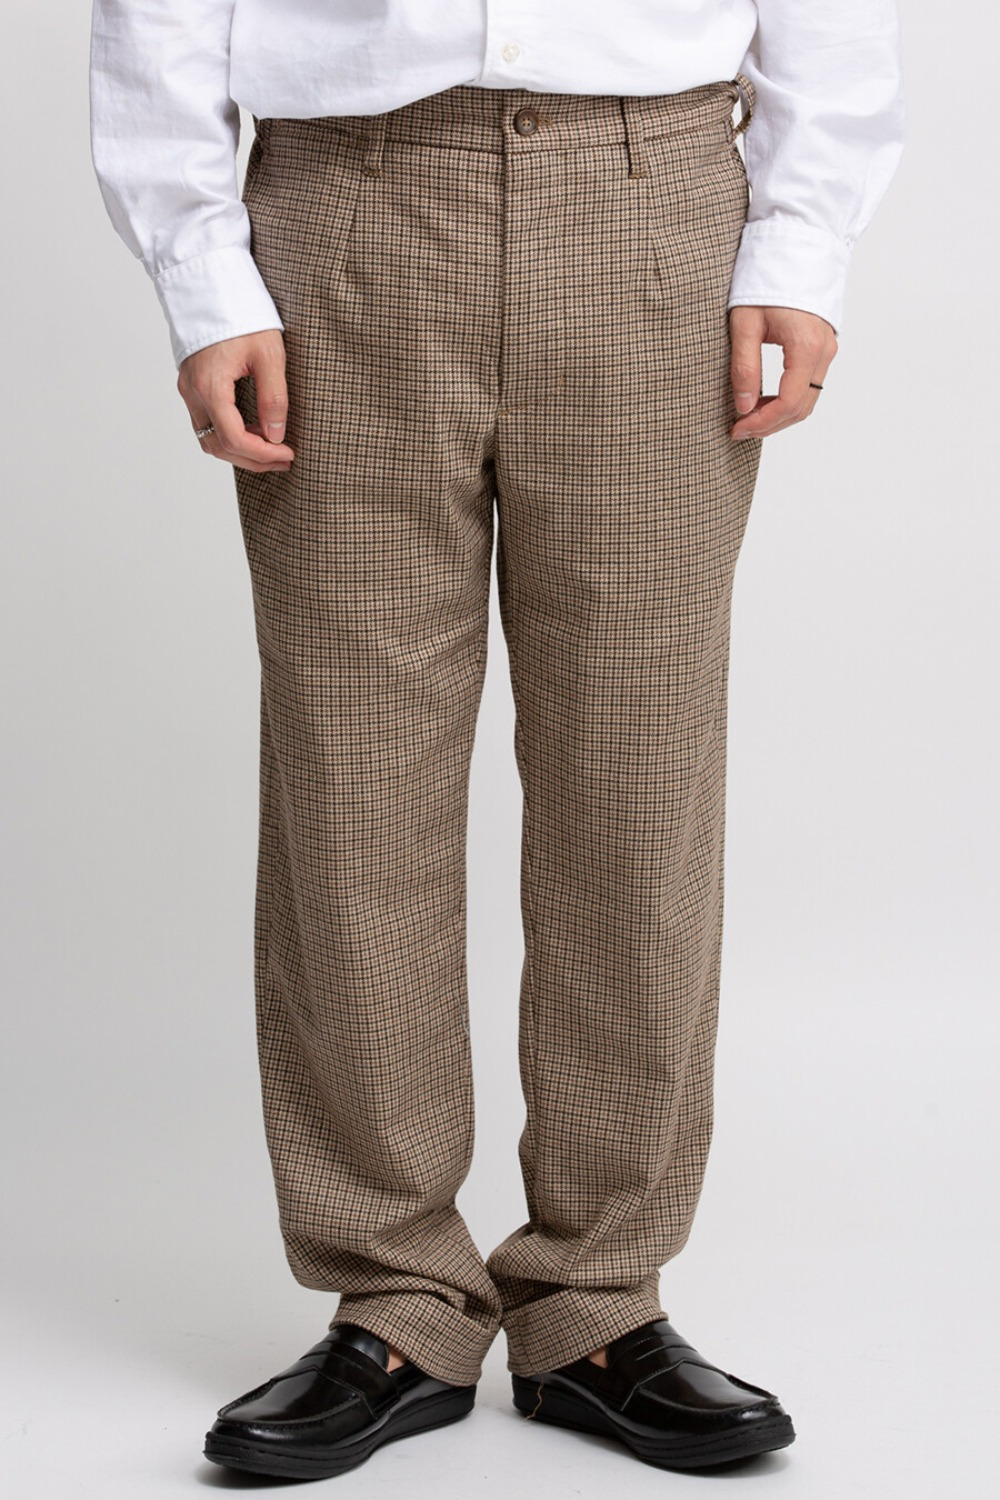 ANDOVER PANT BROWN WOOL POLY GUNCLUB